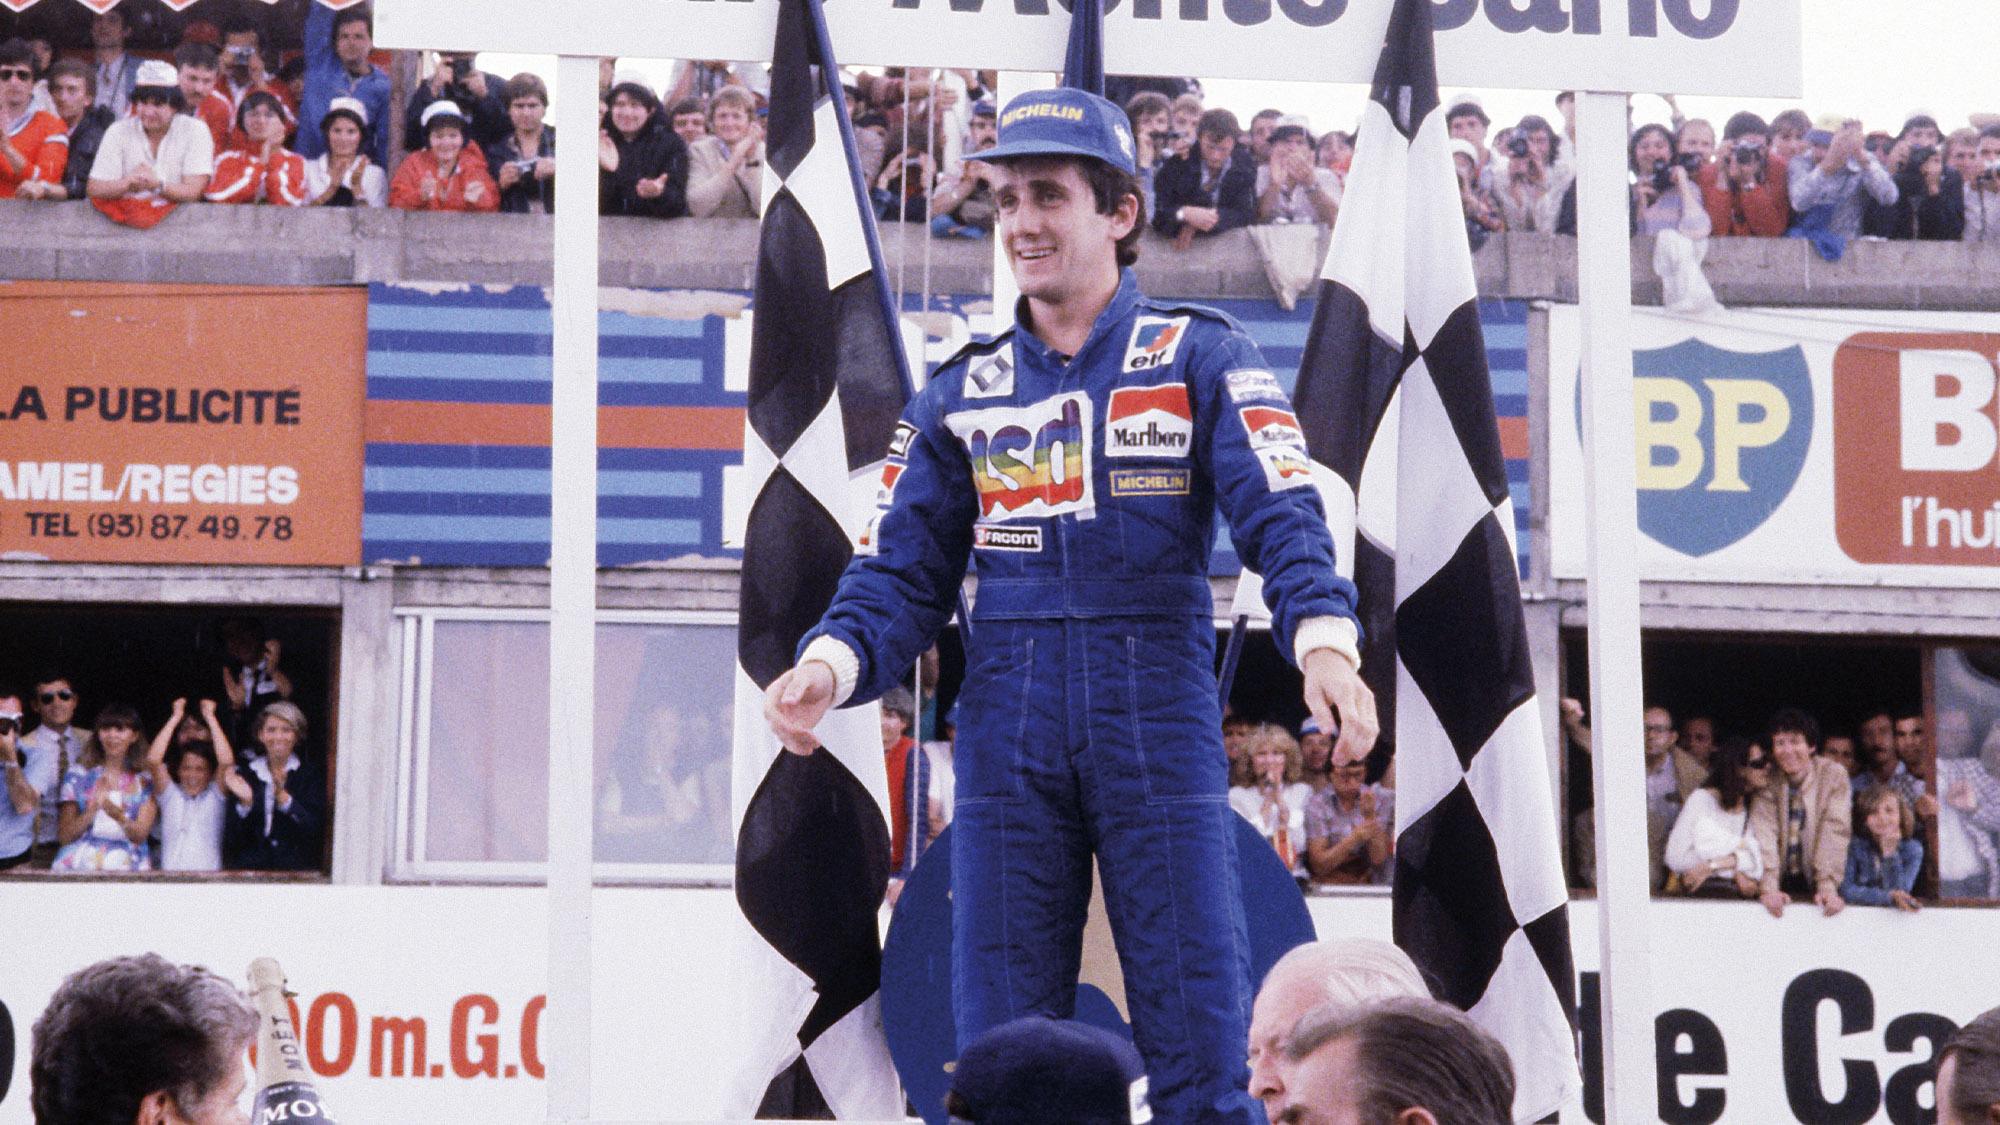 Alain Prost celebrates winning the 1981 French Grand Prix at Paul Ricard for Renault